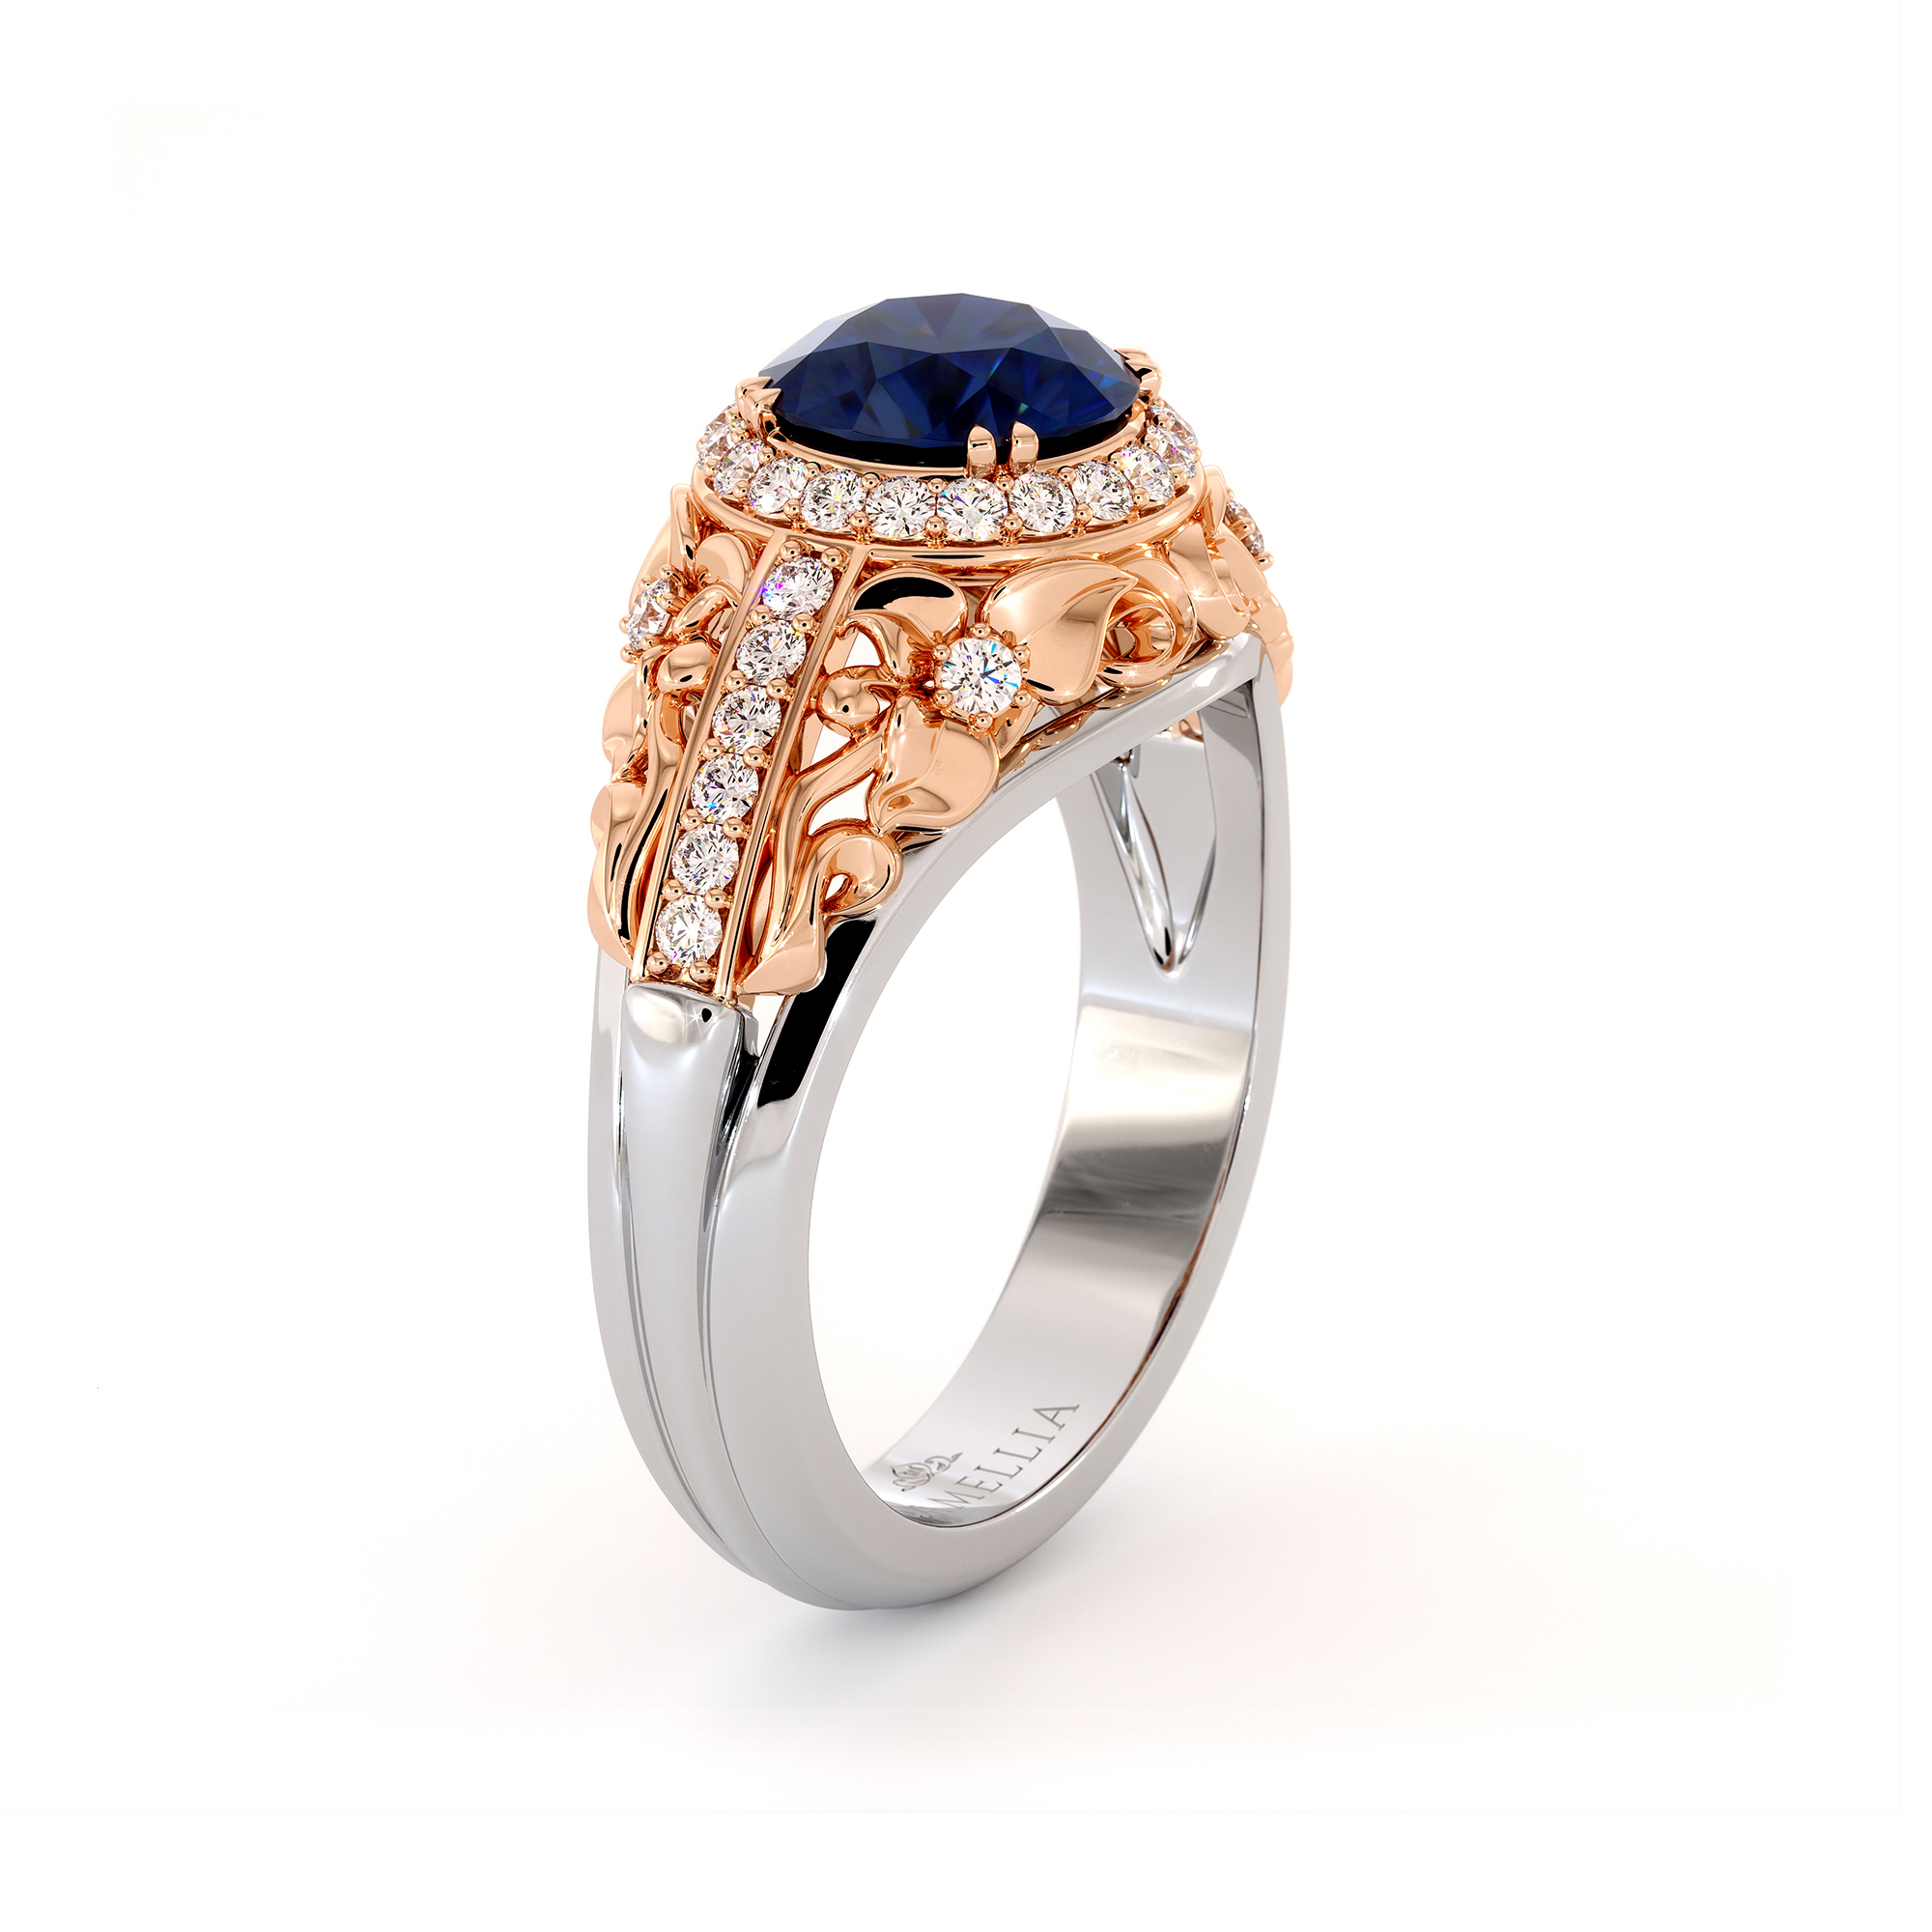 Regal Blue Sapphire Engagement Ring Vintage Two Tone Gold Engagement Ring